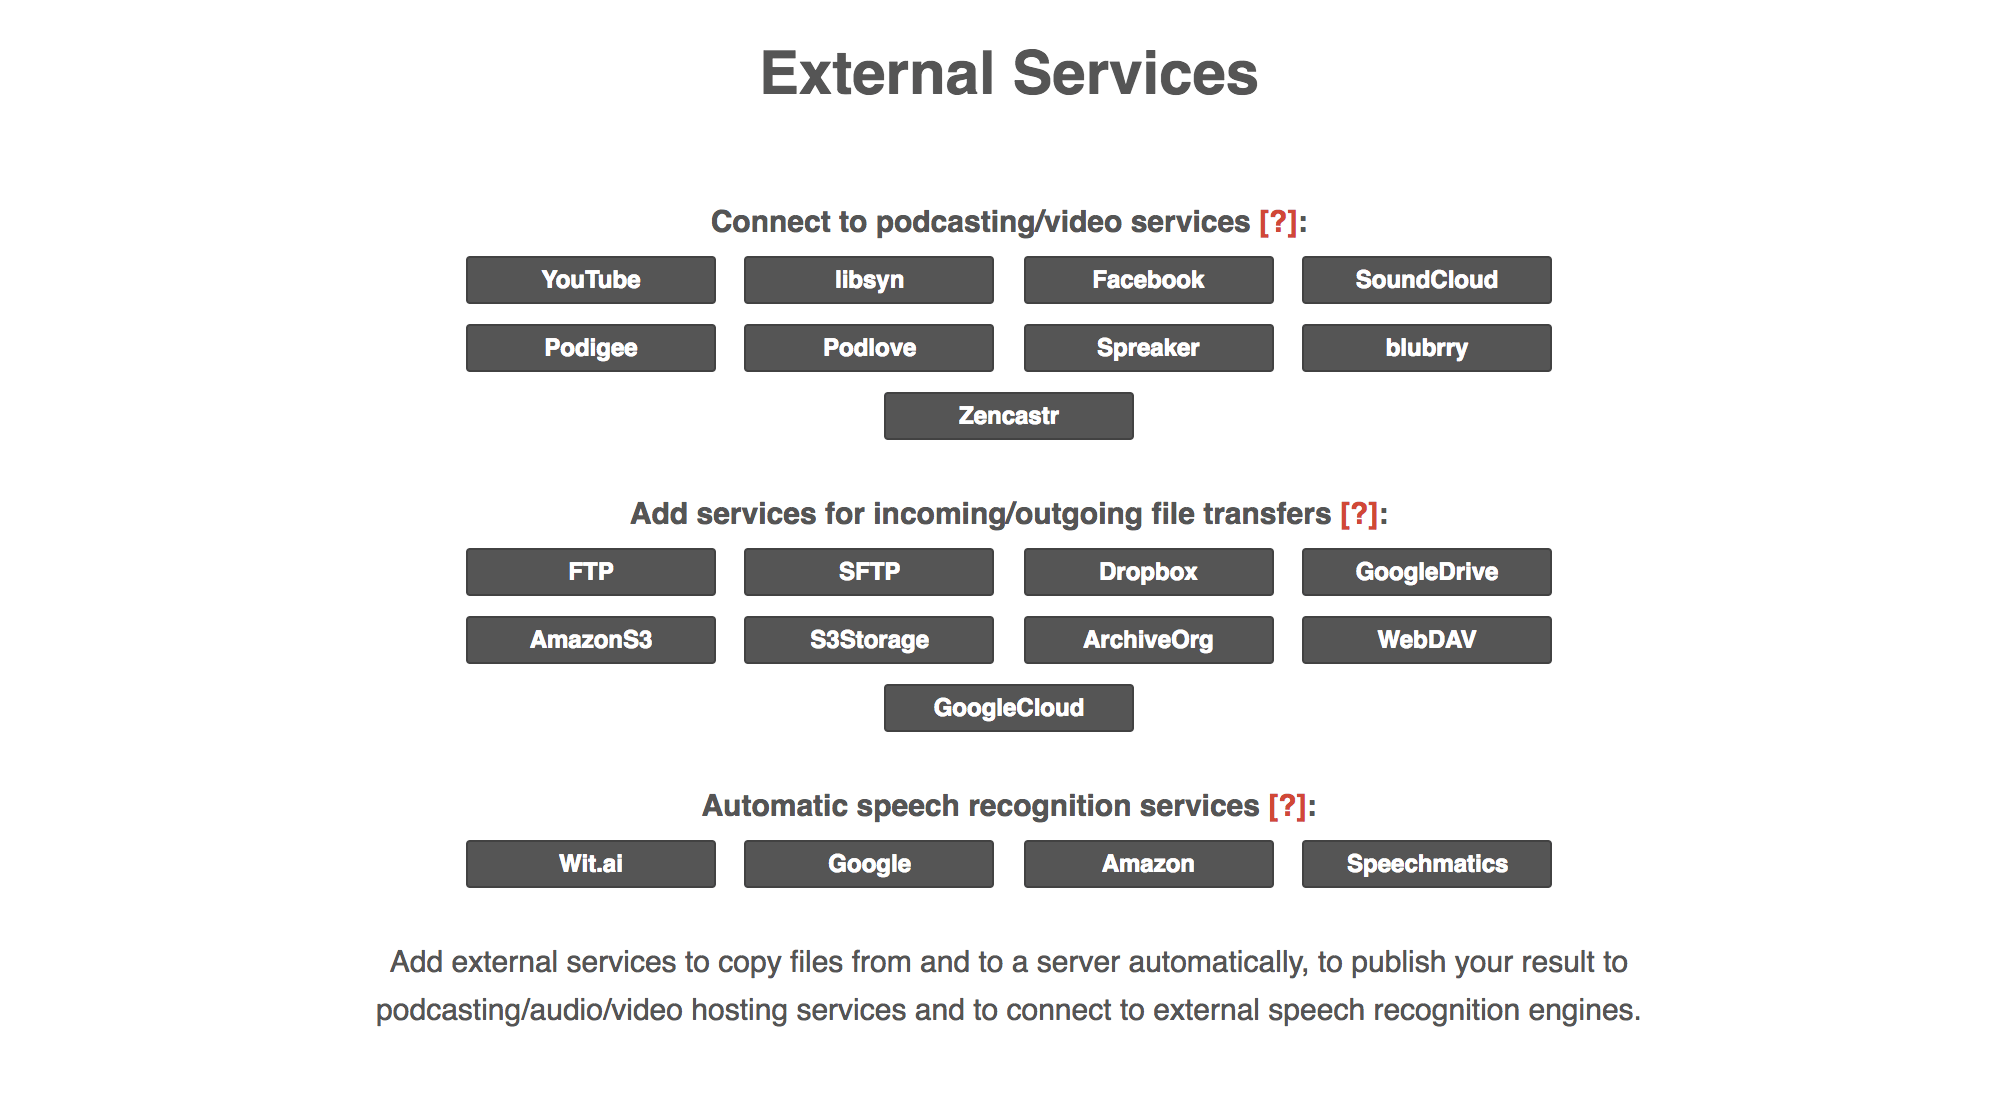 Available External Services